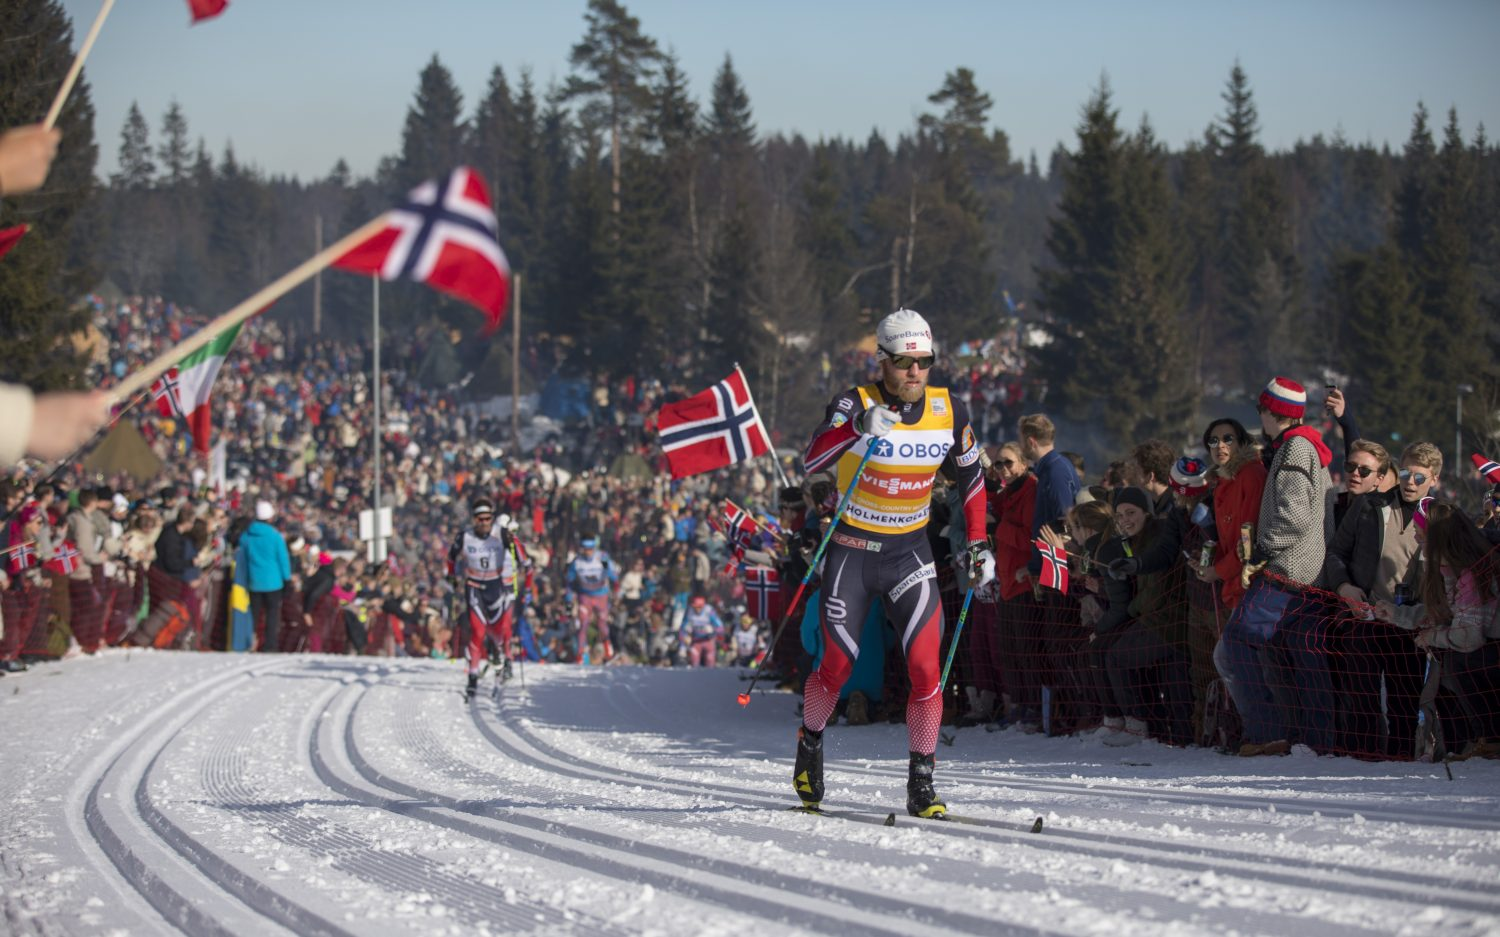 Welcome to FIS World Cup Nordic | Holmenkollen Skifestival